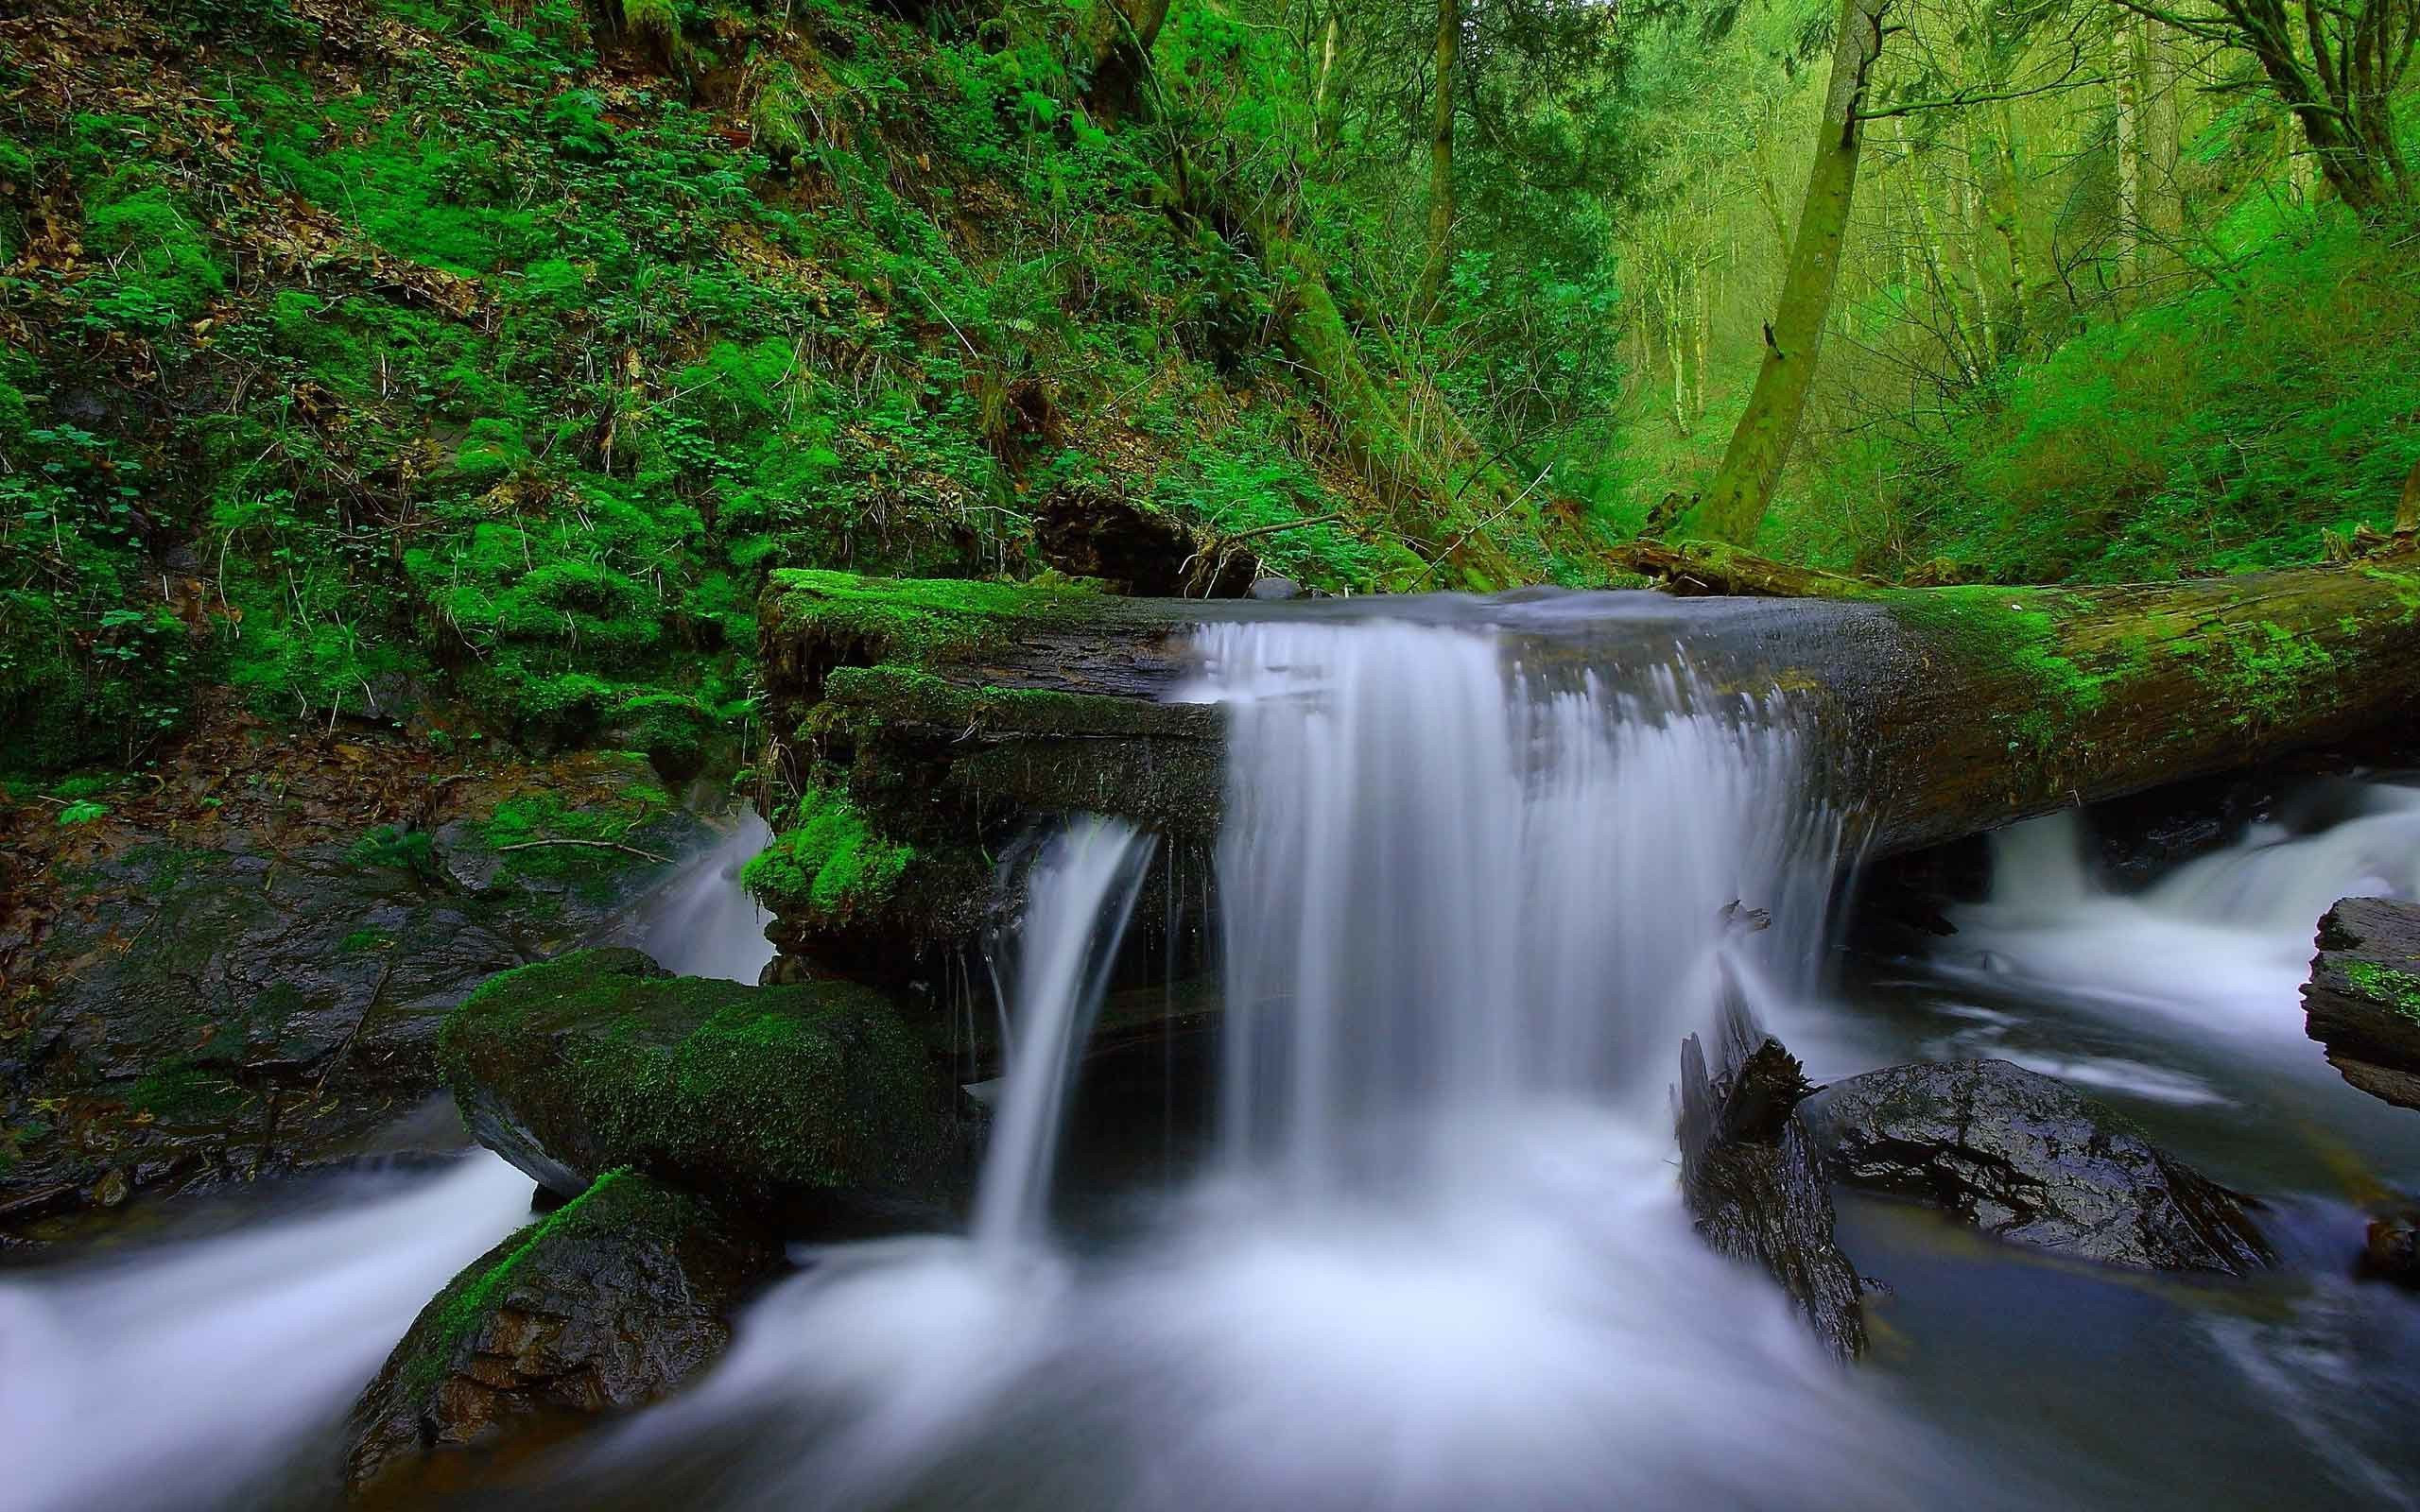 Waterfalls Moss Rocks Waterfall Forest River Landscape Nature Trees Stream  Background Images